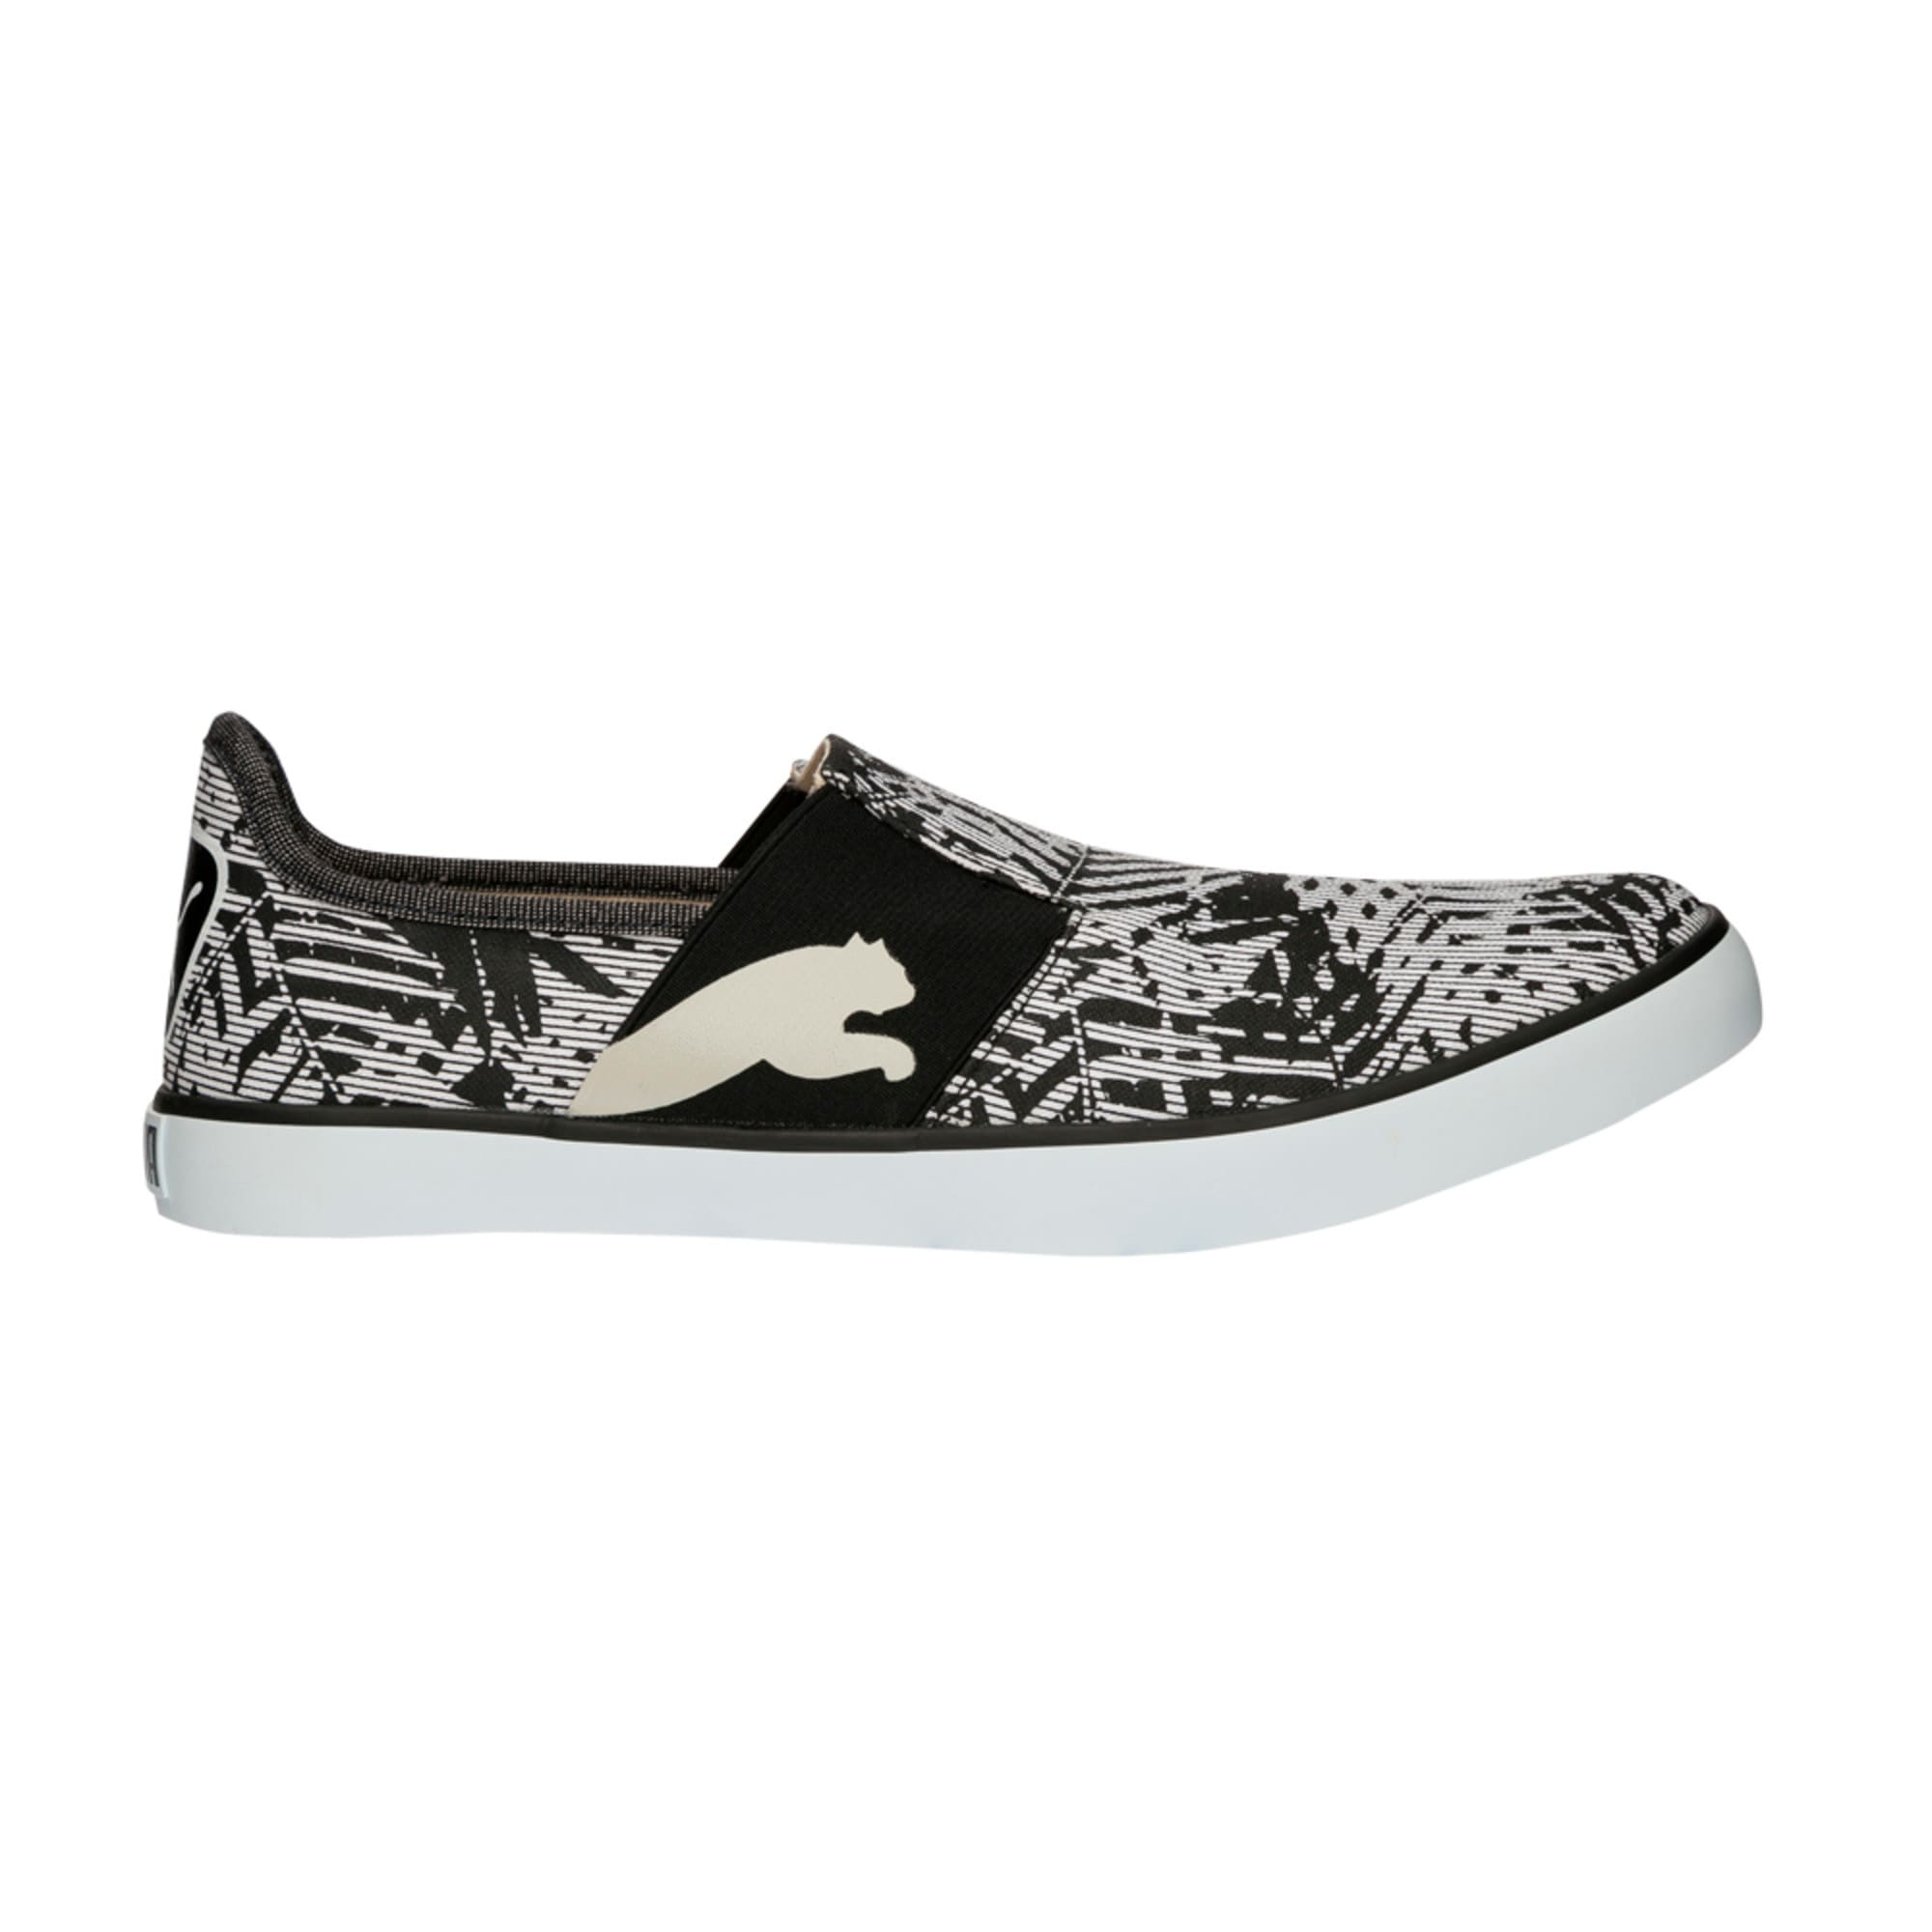 Thumbnail 2 of Lazy Slip On Graphic DP, Black-Gray Violet-White, medium-IND